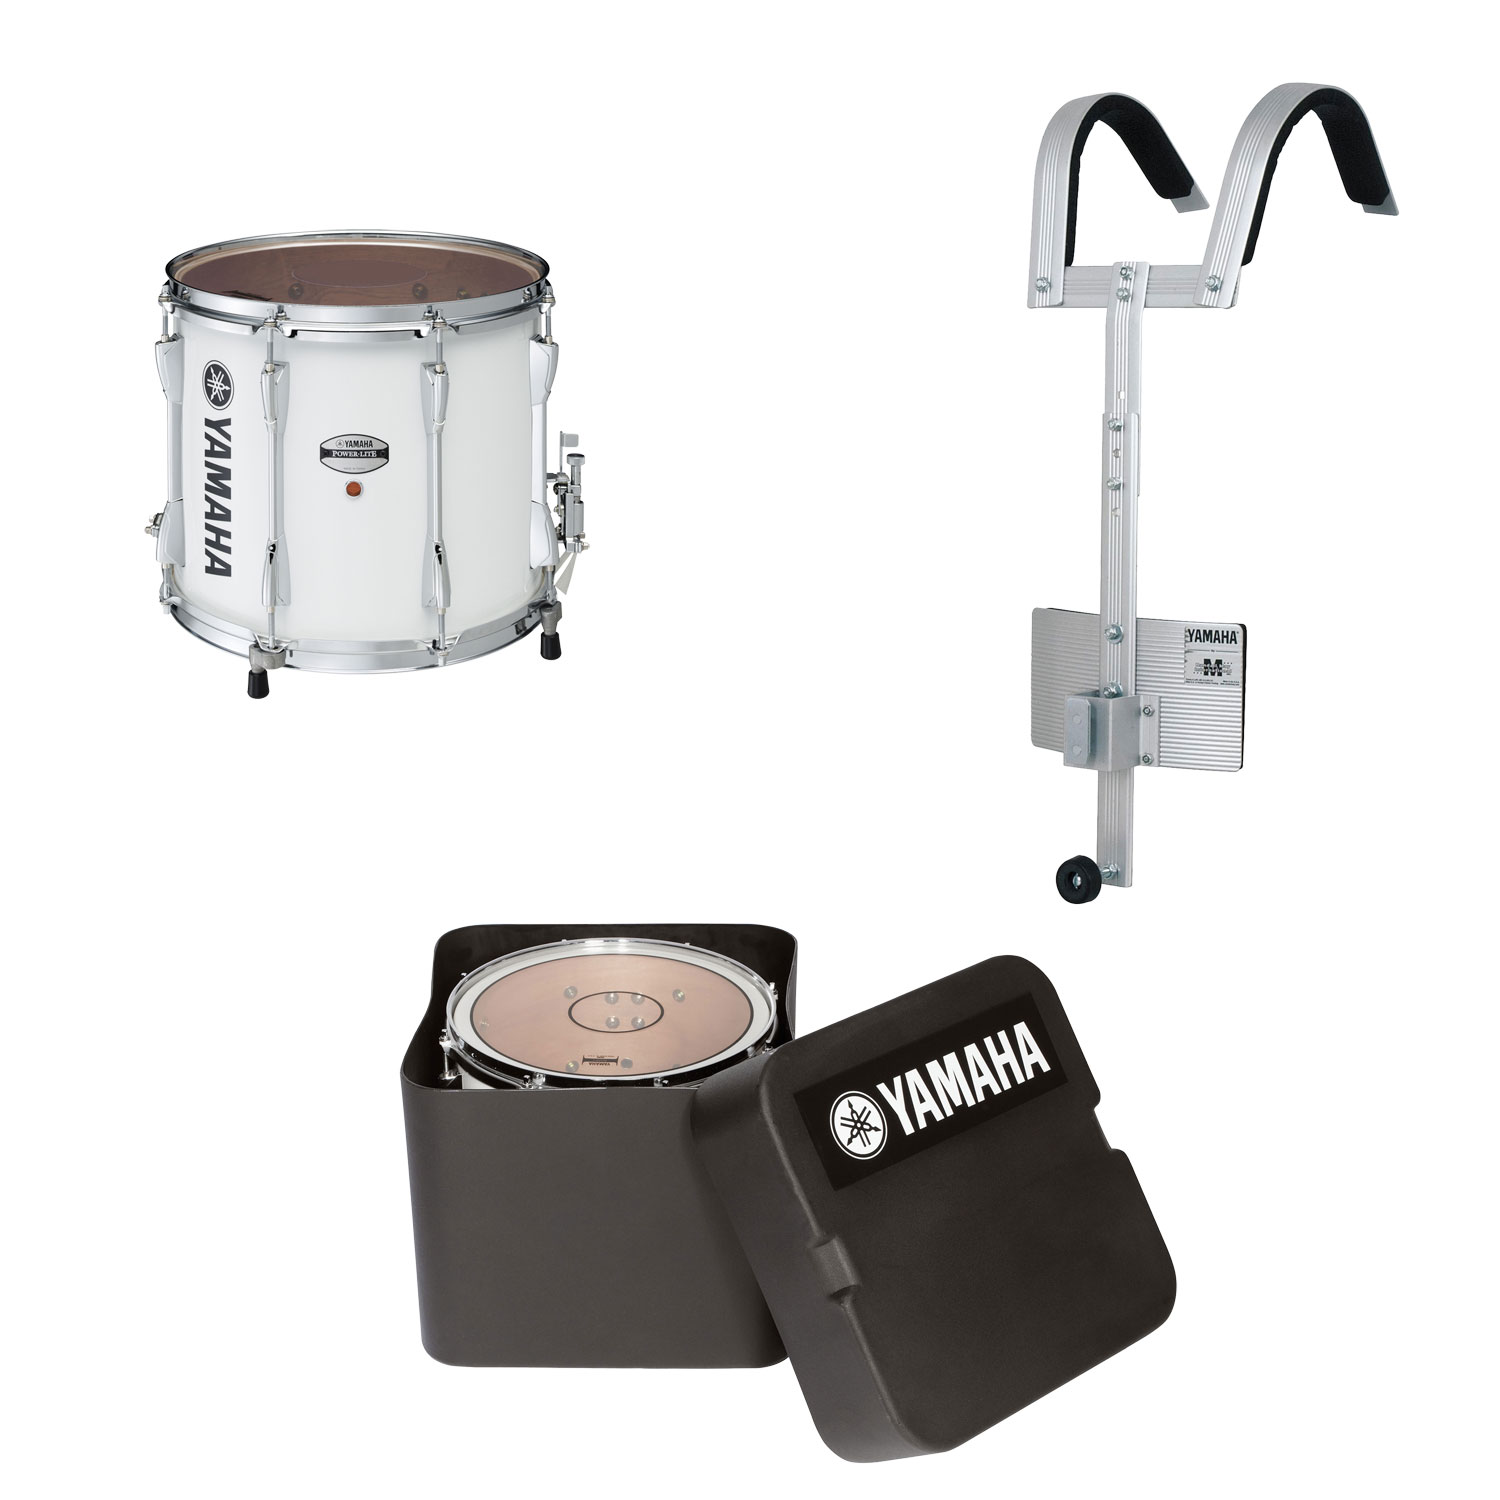 "Yamaha 14"" (Diameter) x 12"" (Deep) Power-Lite Drum/Carrier/Case Marching Snare Drum Bundle"